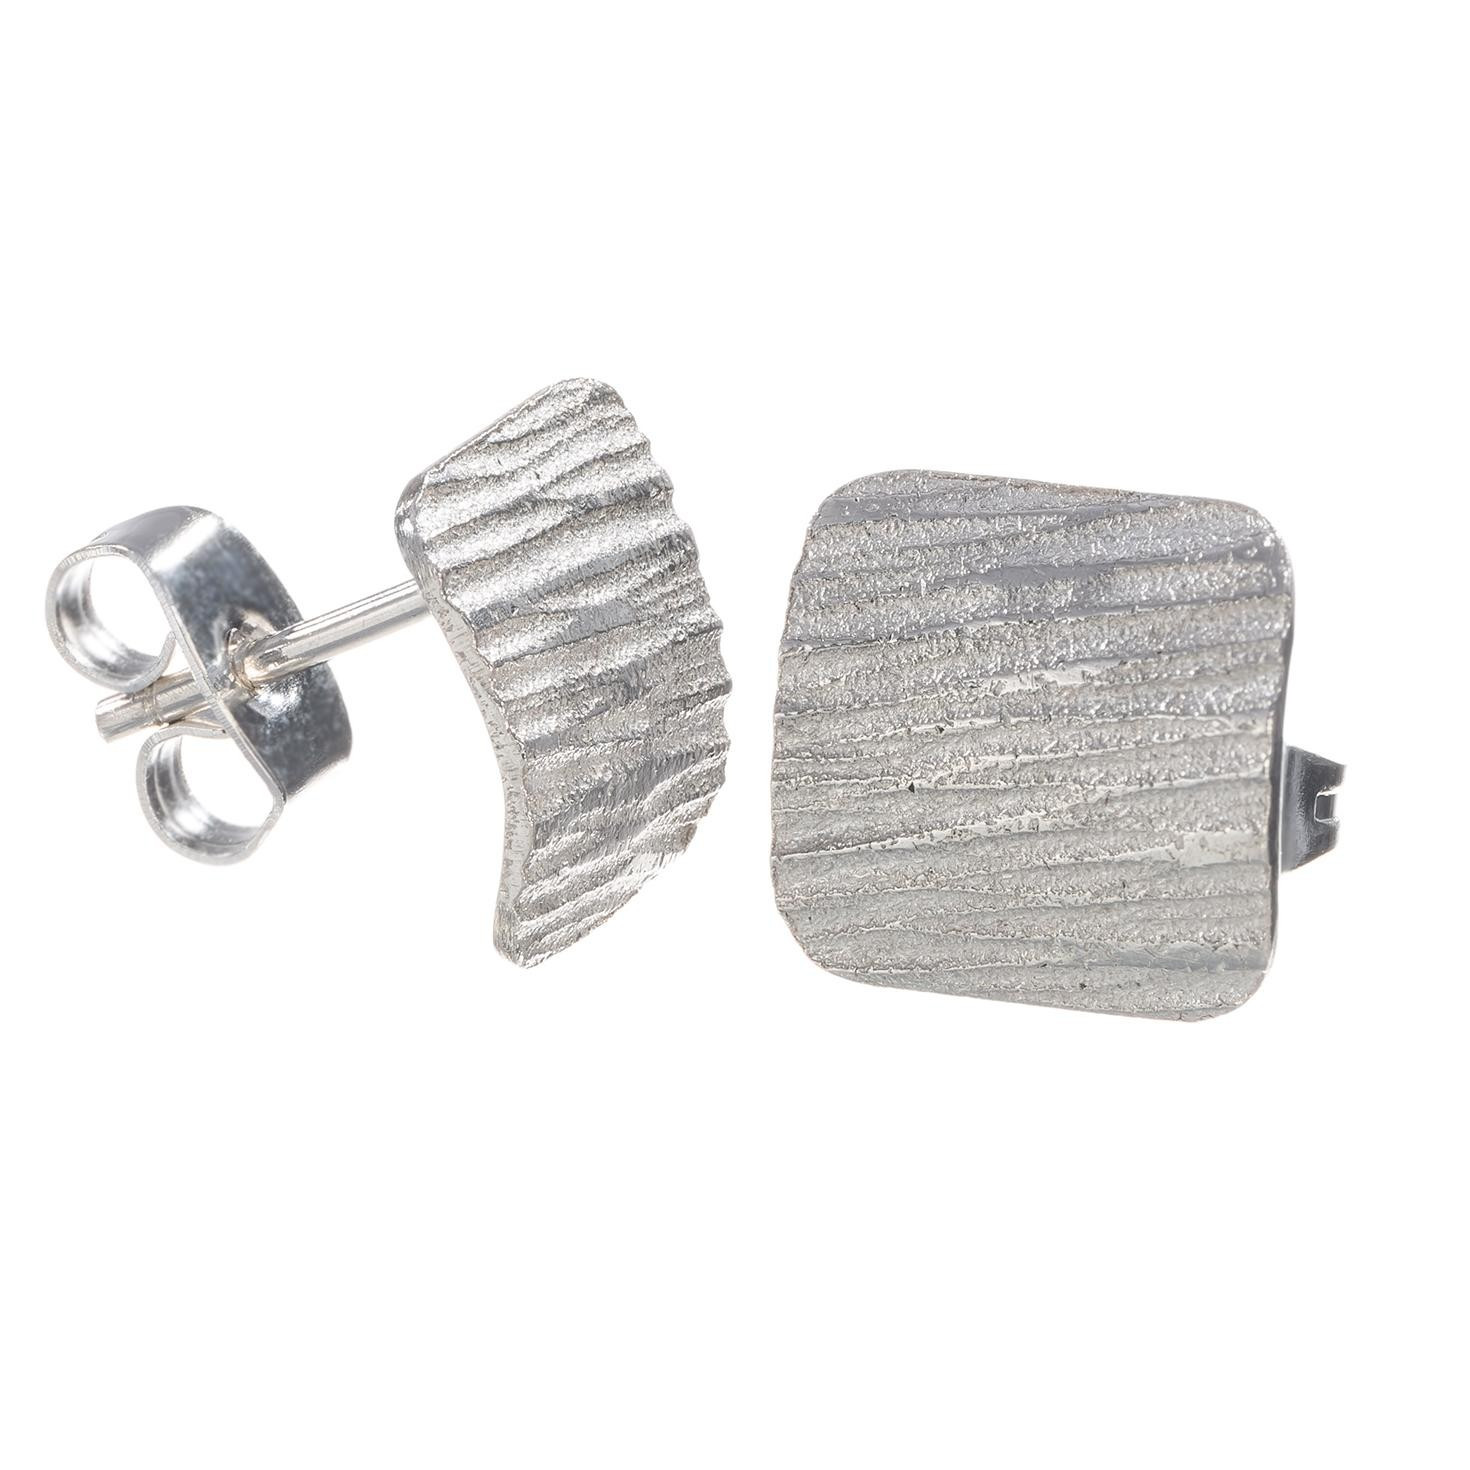 Textured Square Sterling Silver Earrings